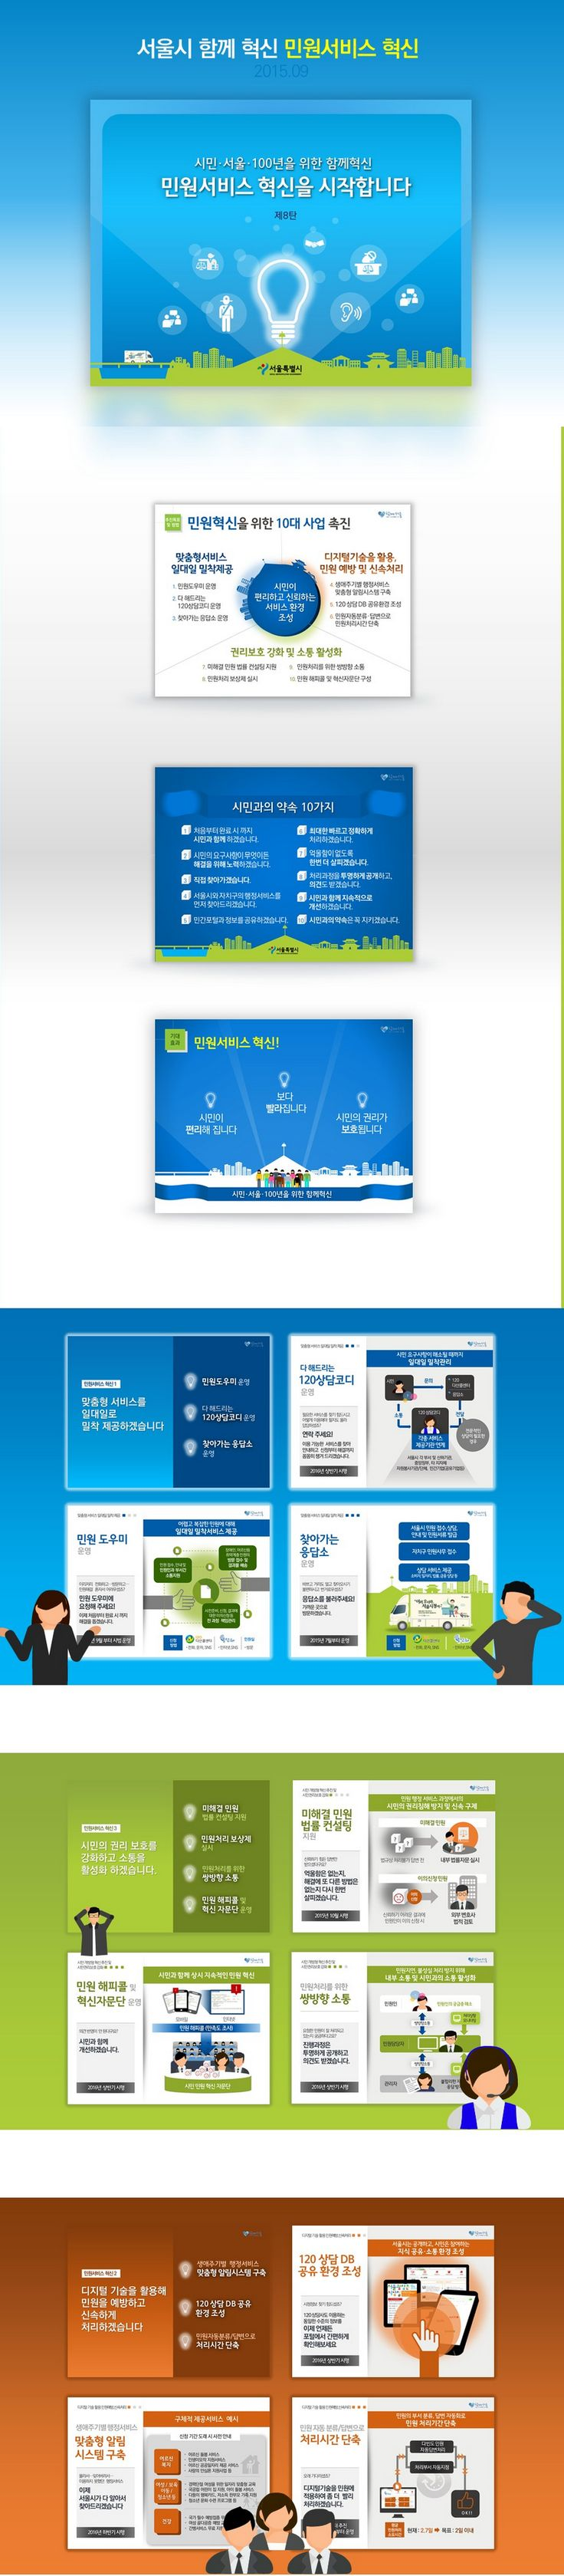 Presentation Design for Seoul Citizen Service. Design by ptwiz / Client : City of Seoul  서울시 시민소통기획관 민원서비스 혁신계획